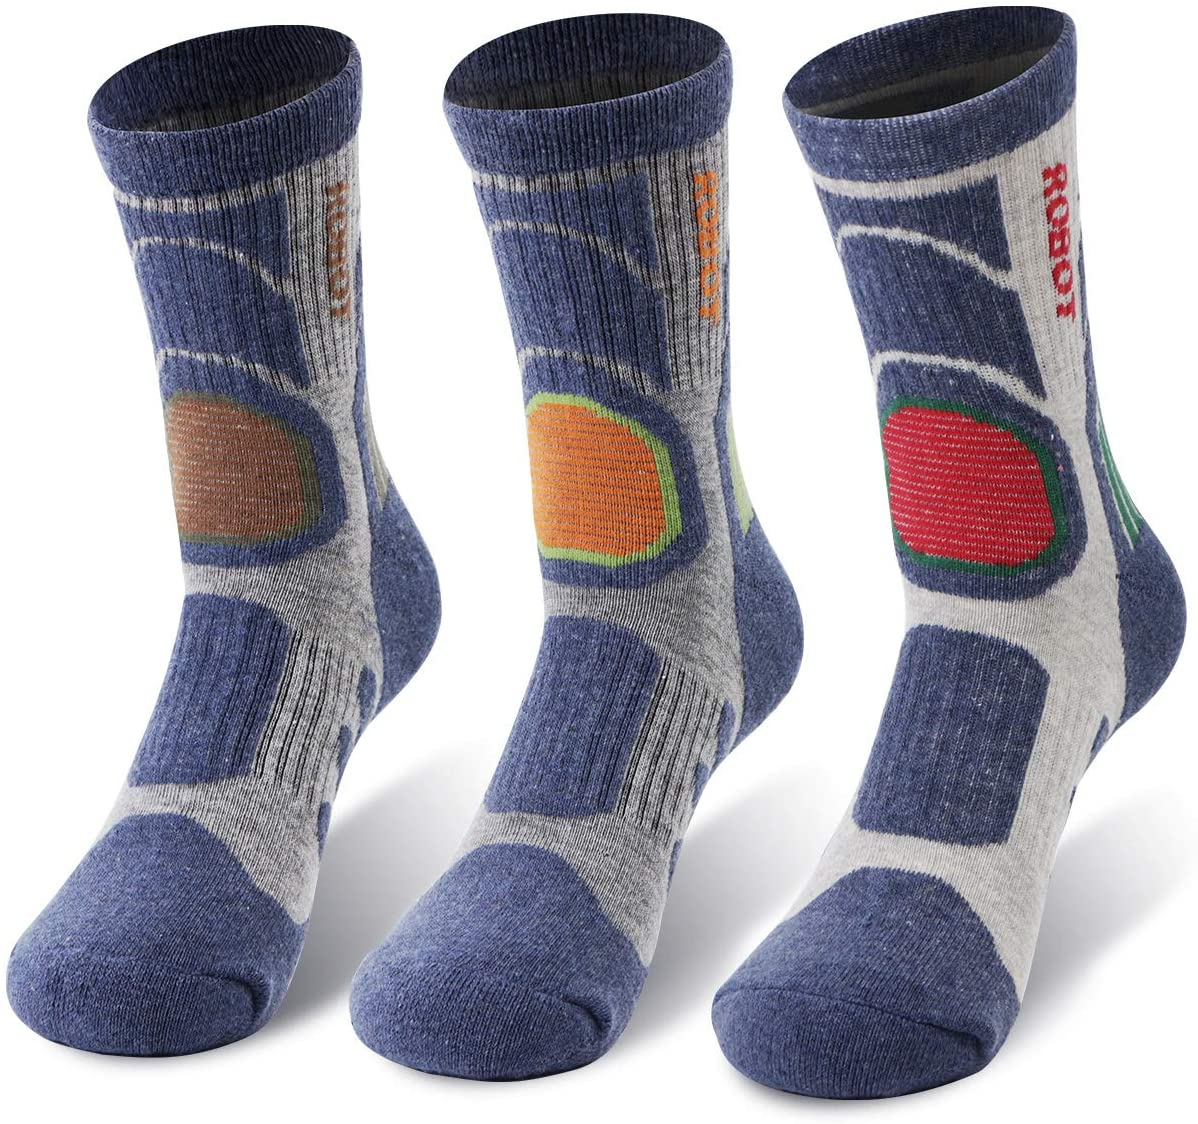 REDCAMP 3 Pairs Hiking Socks Mens for Outdoor Trekking Backpacking,Cotton